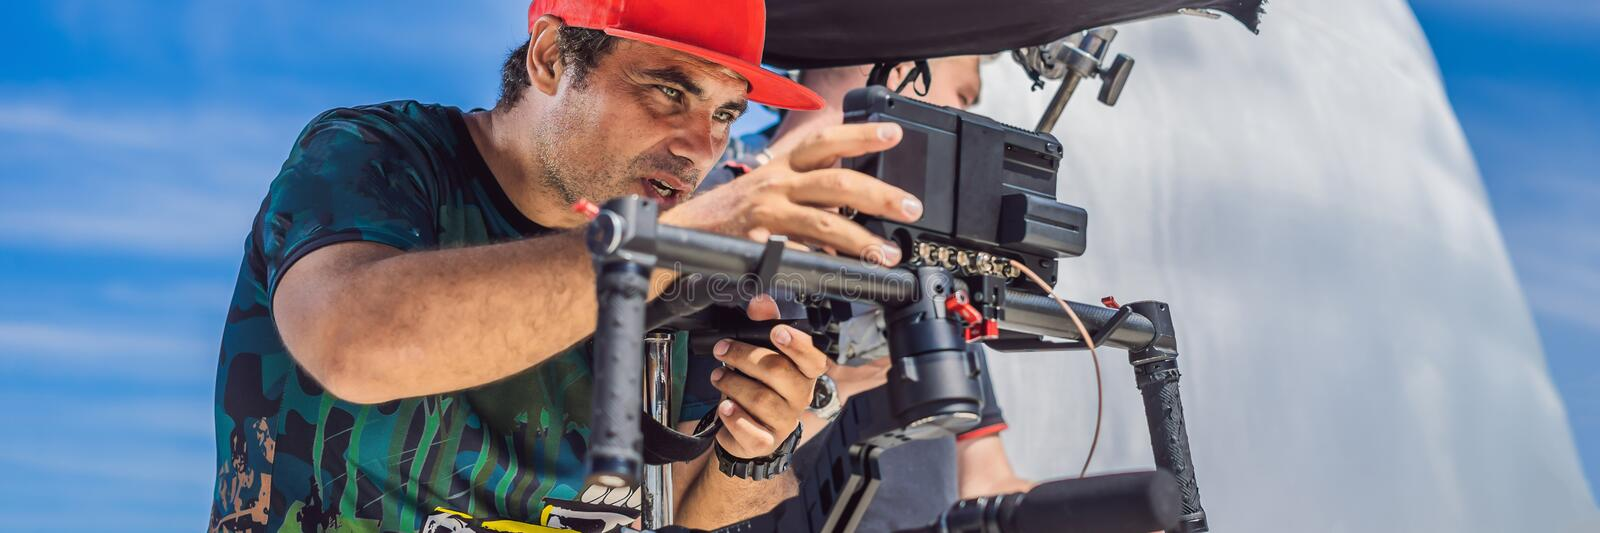 The production team on a commercial video shoot. Steadicam operator uses the 3-axis camera stabilizer and cinema-grade. Camera. BANNER, LONG FORMAT royalty free stock photography